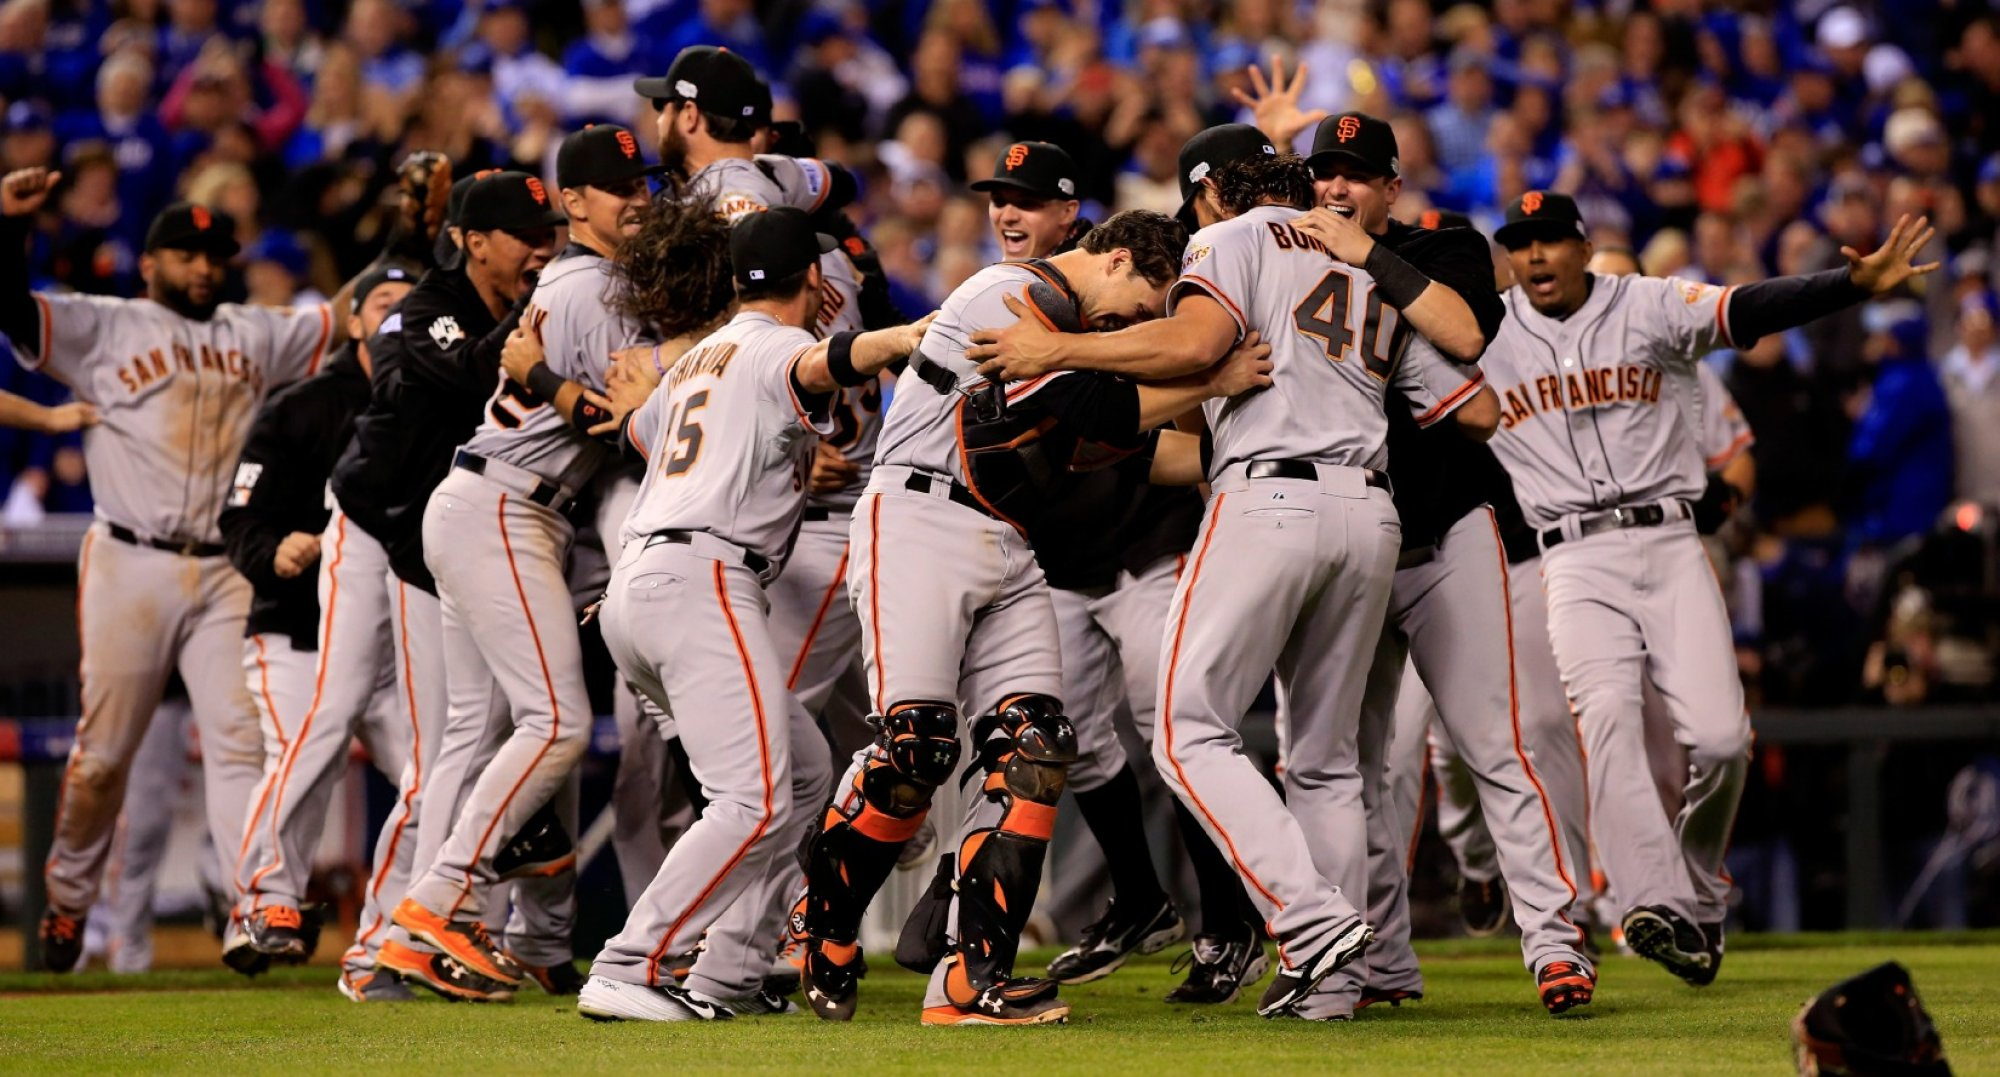 giants-win-world-series-1414640990